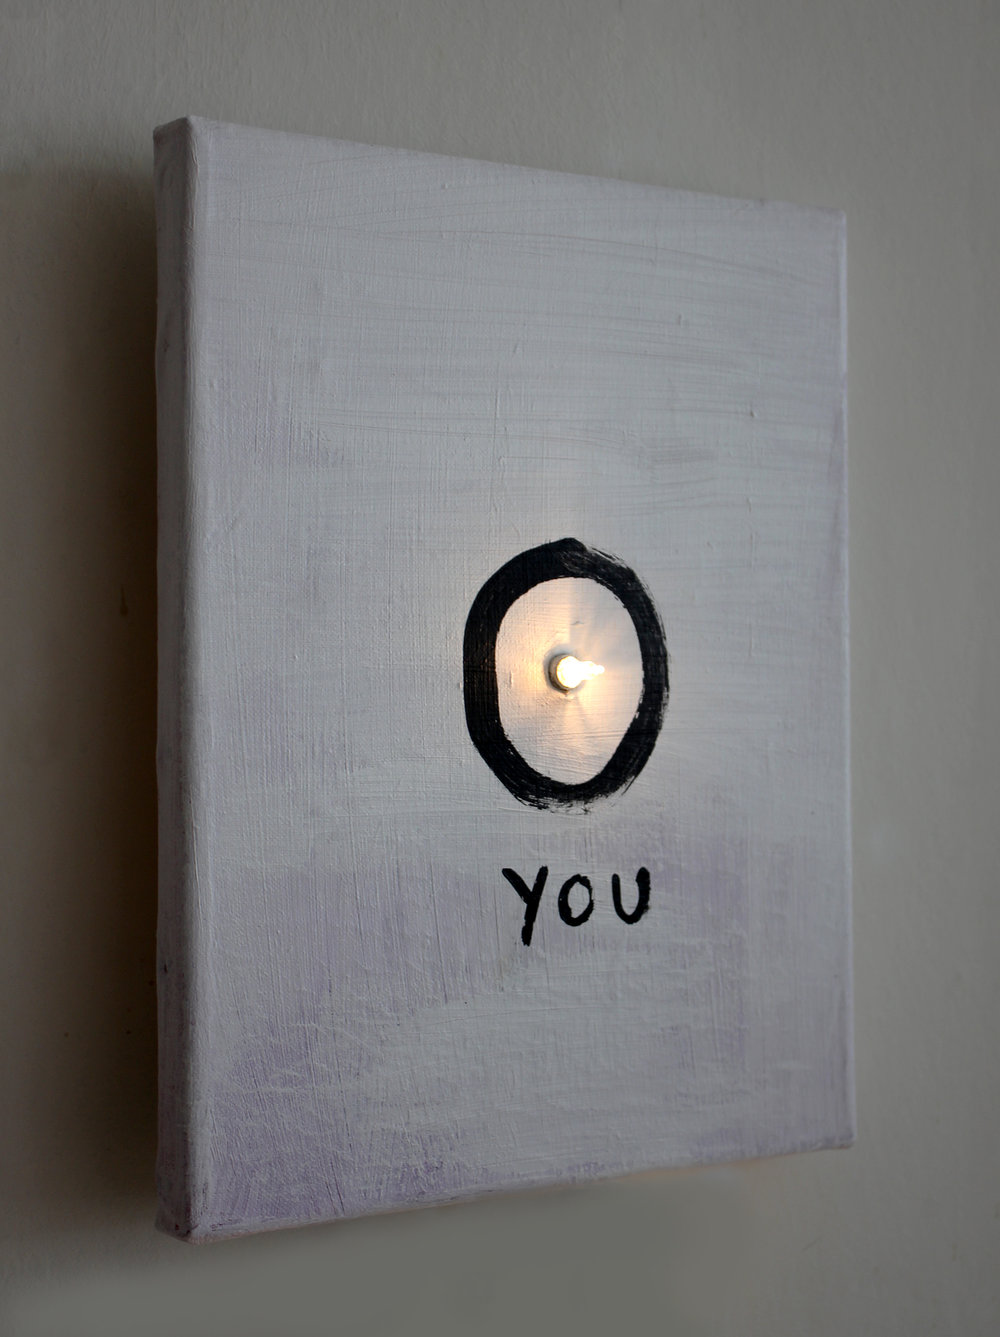 You. 2017. Canvas and light. 24x30